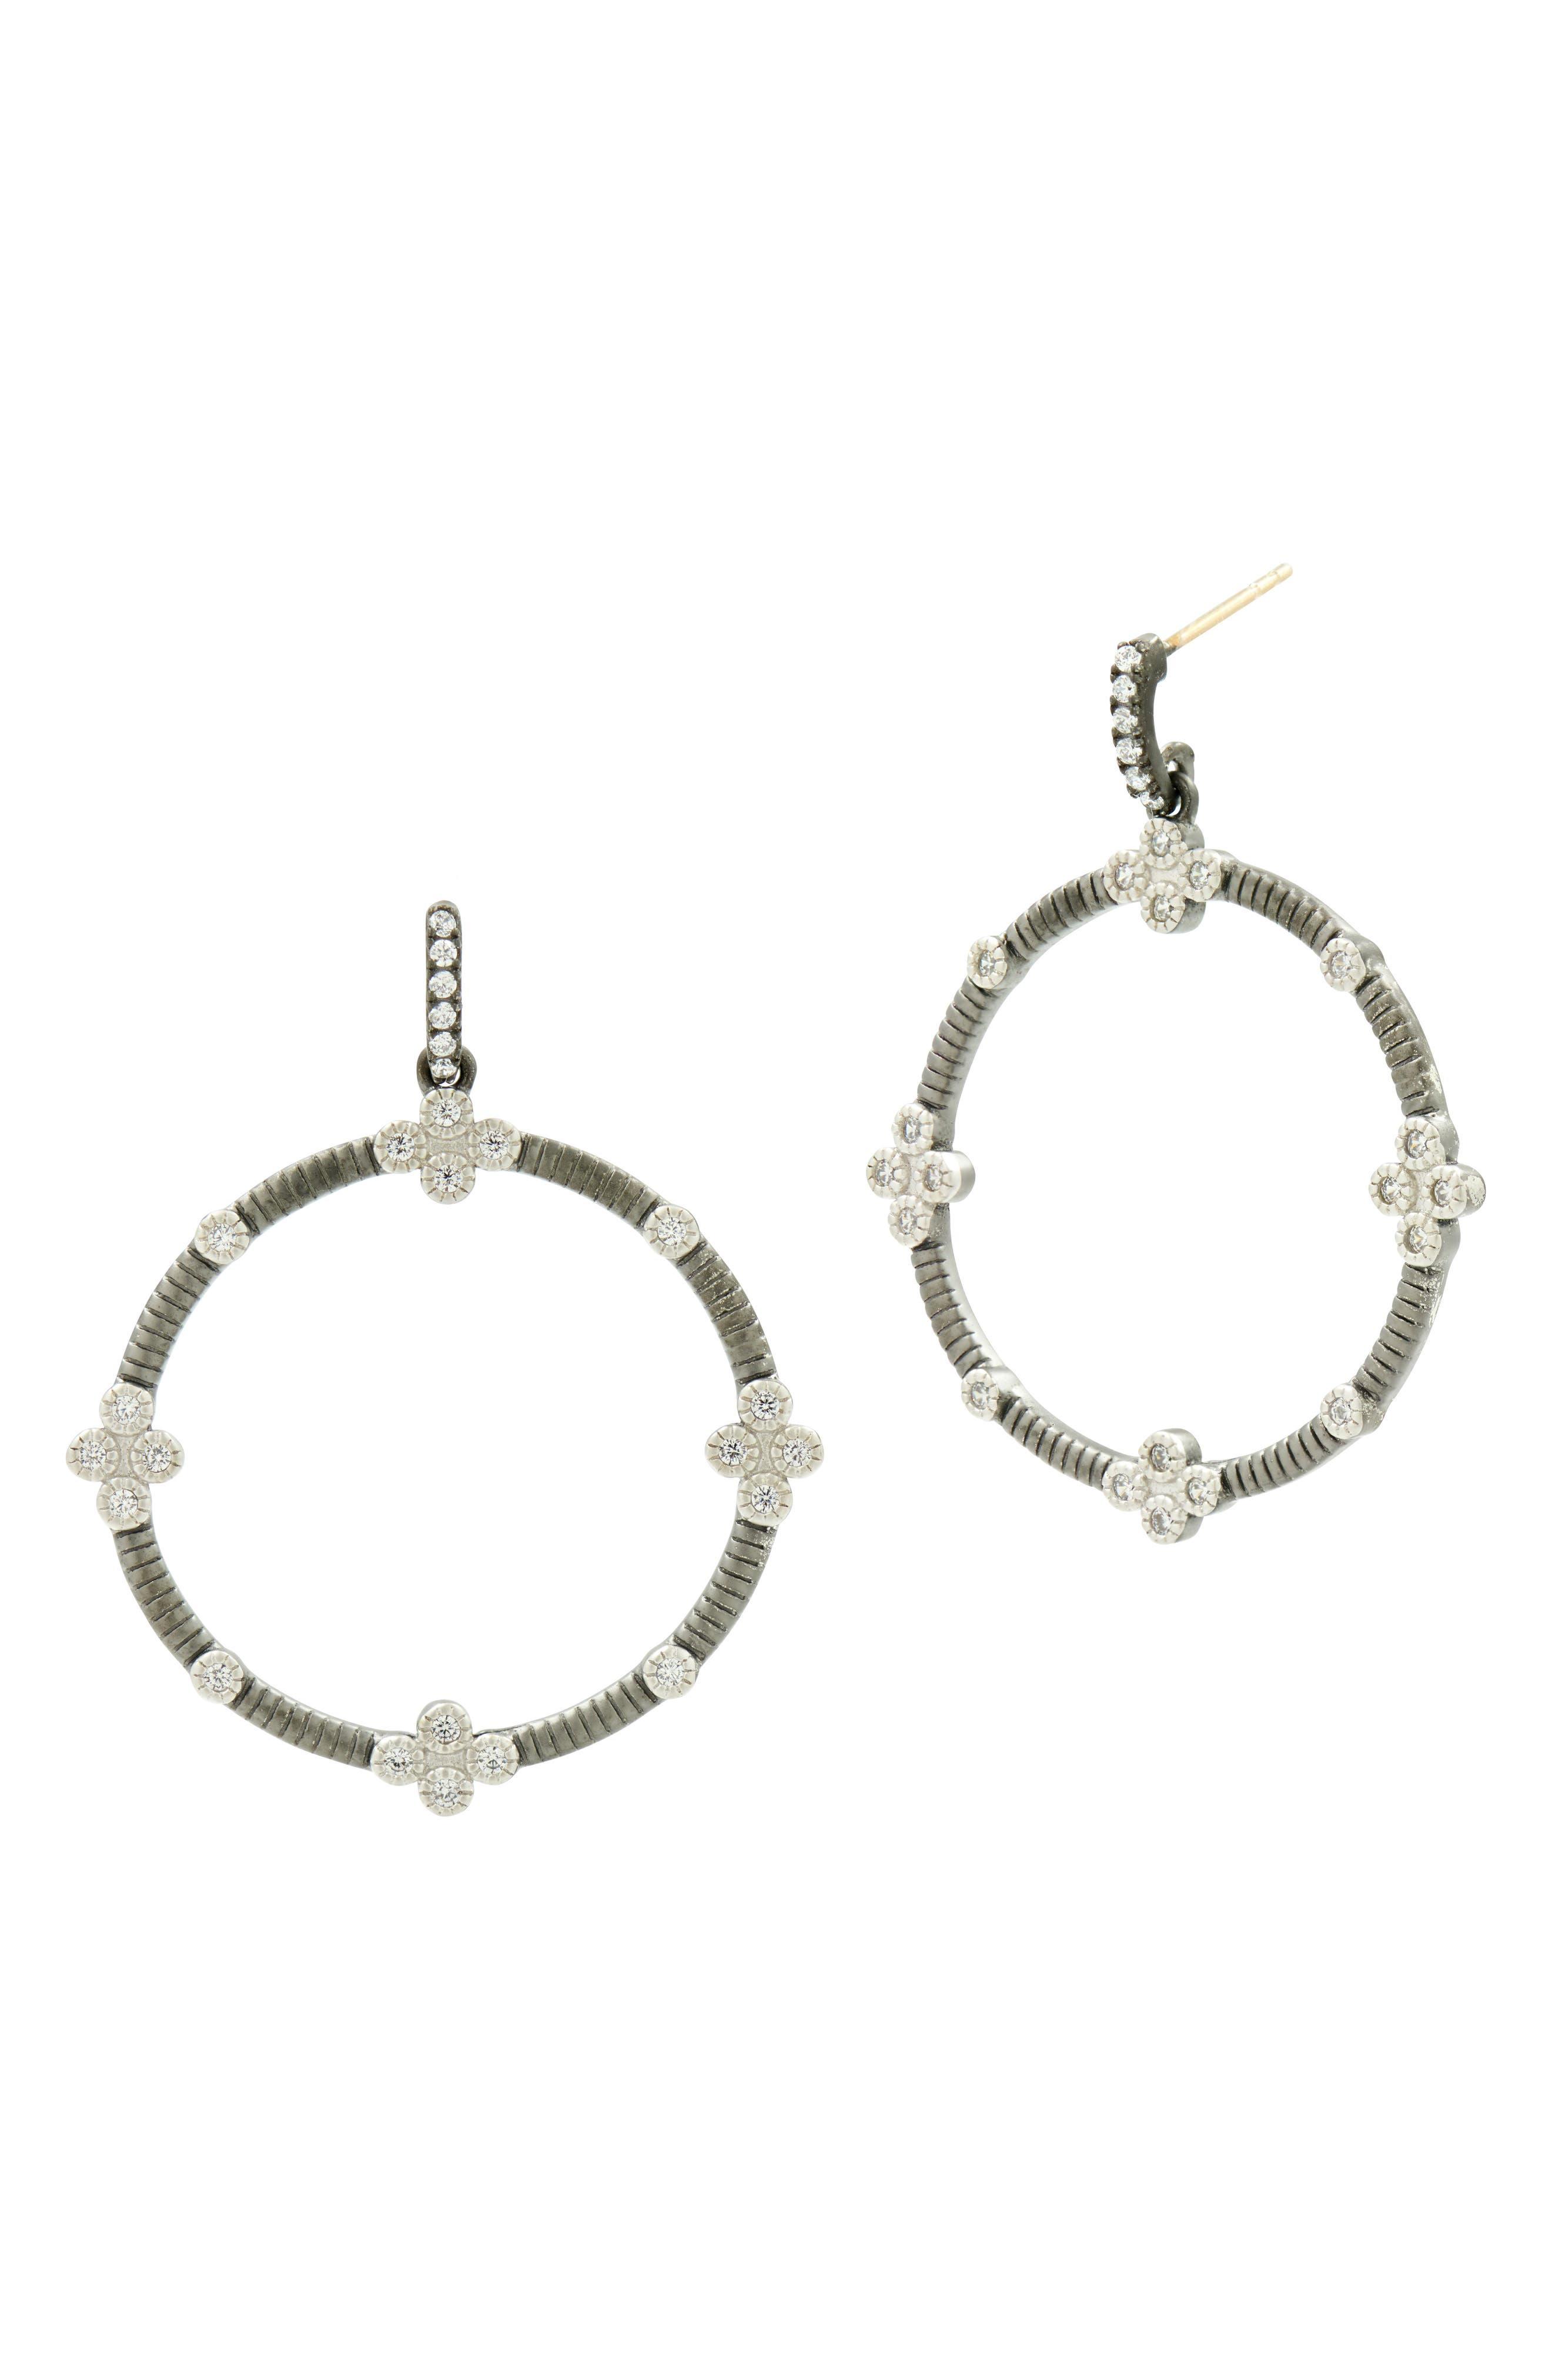 Four-Clover Point Frontal Hoop Earrings,                         Main,                         color, SILVER/ BLACK RHODIUM